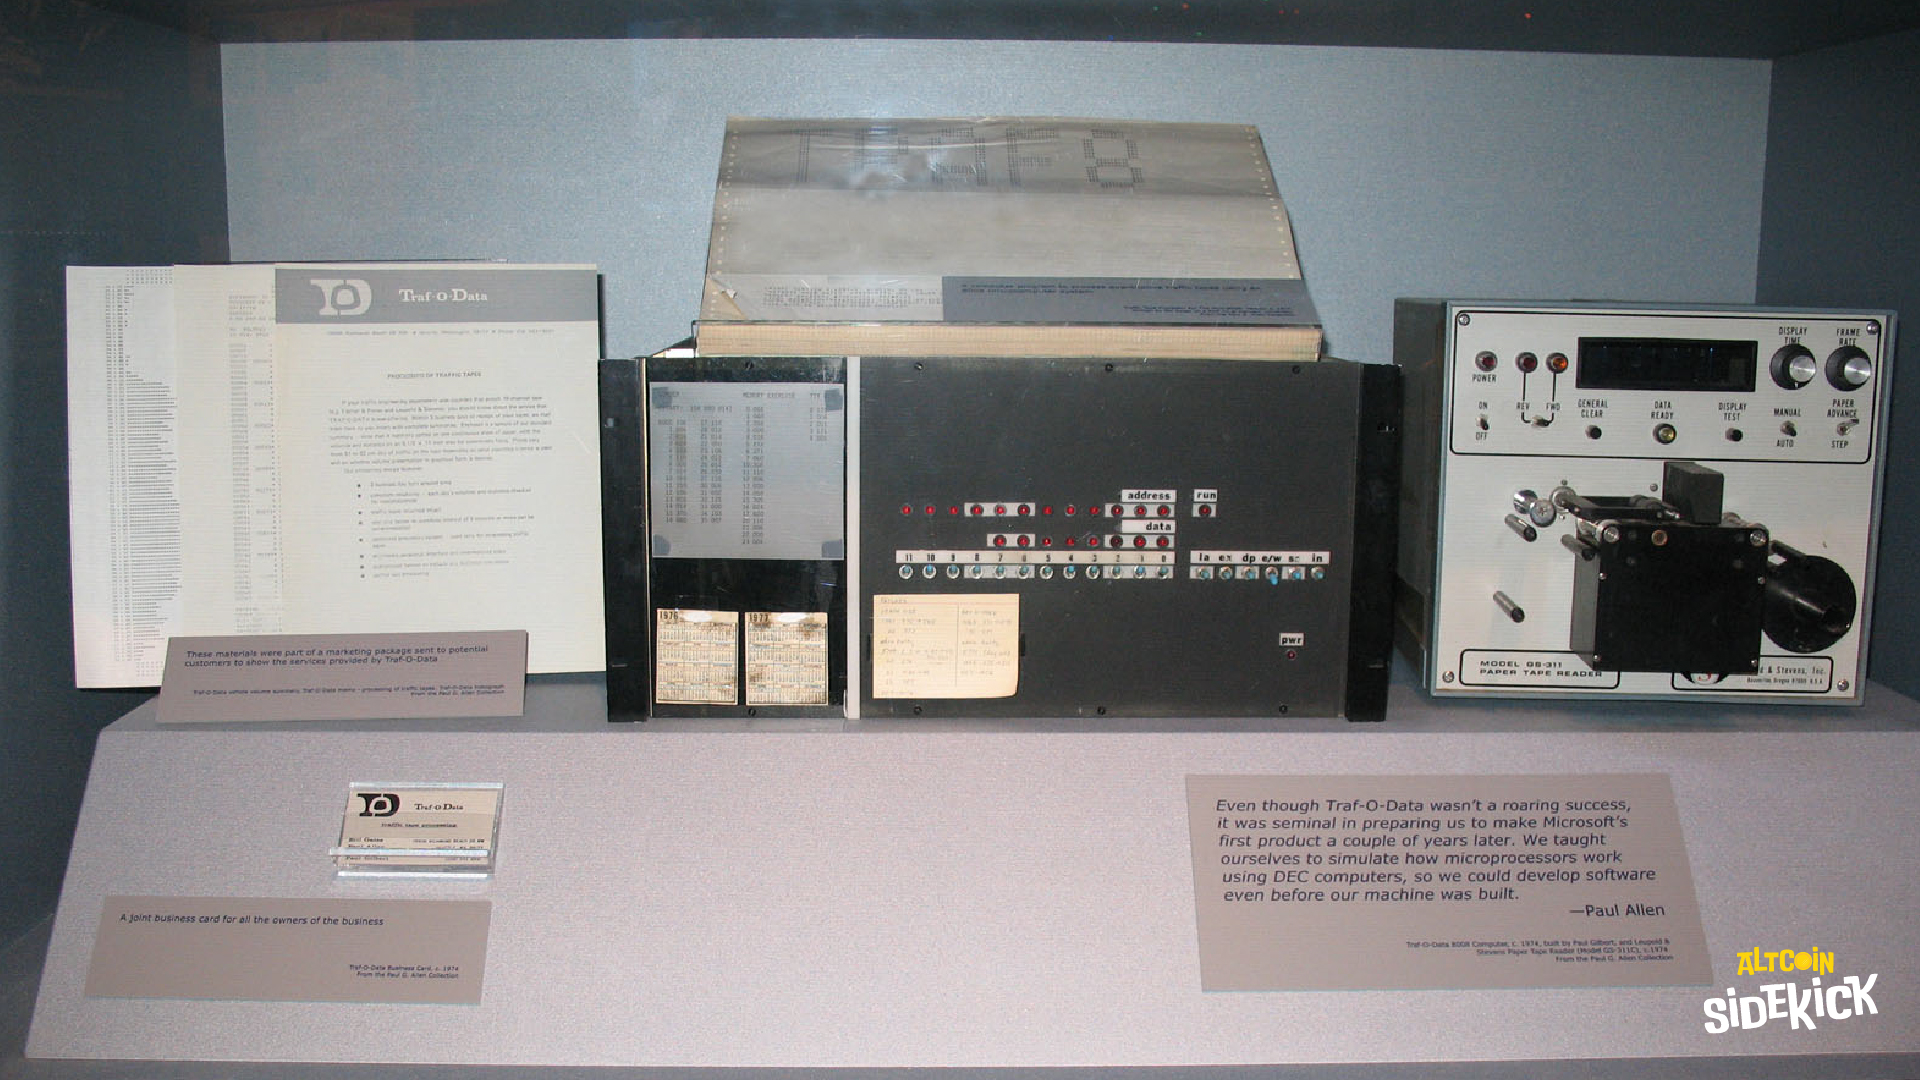 Traf—O-Data in 1972